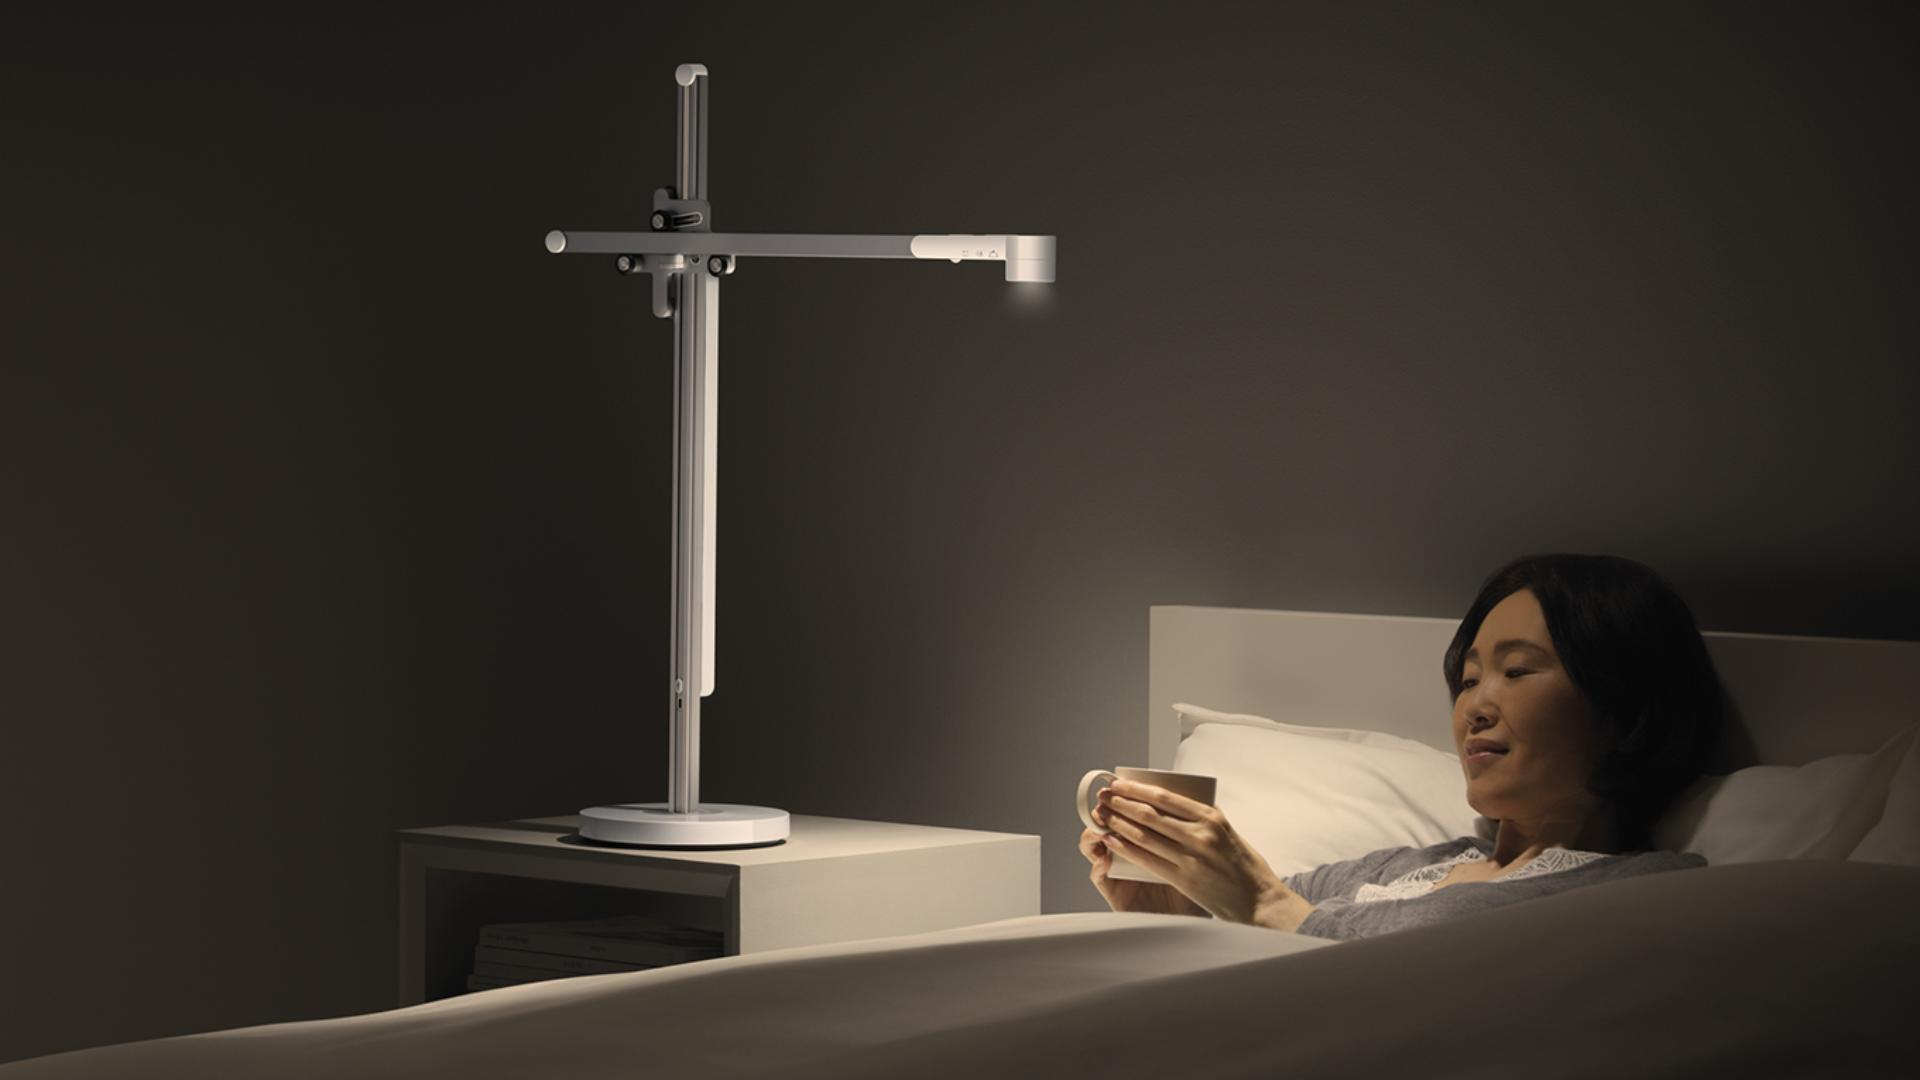 Woman reading in bed beside Dyson task light